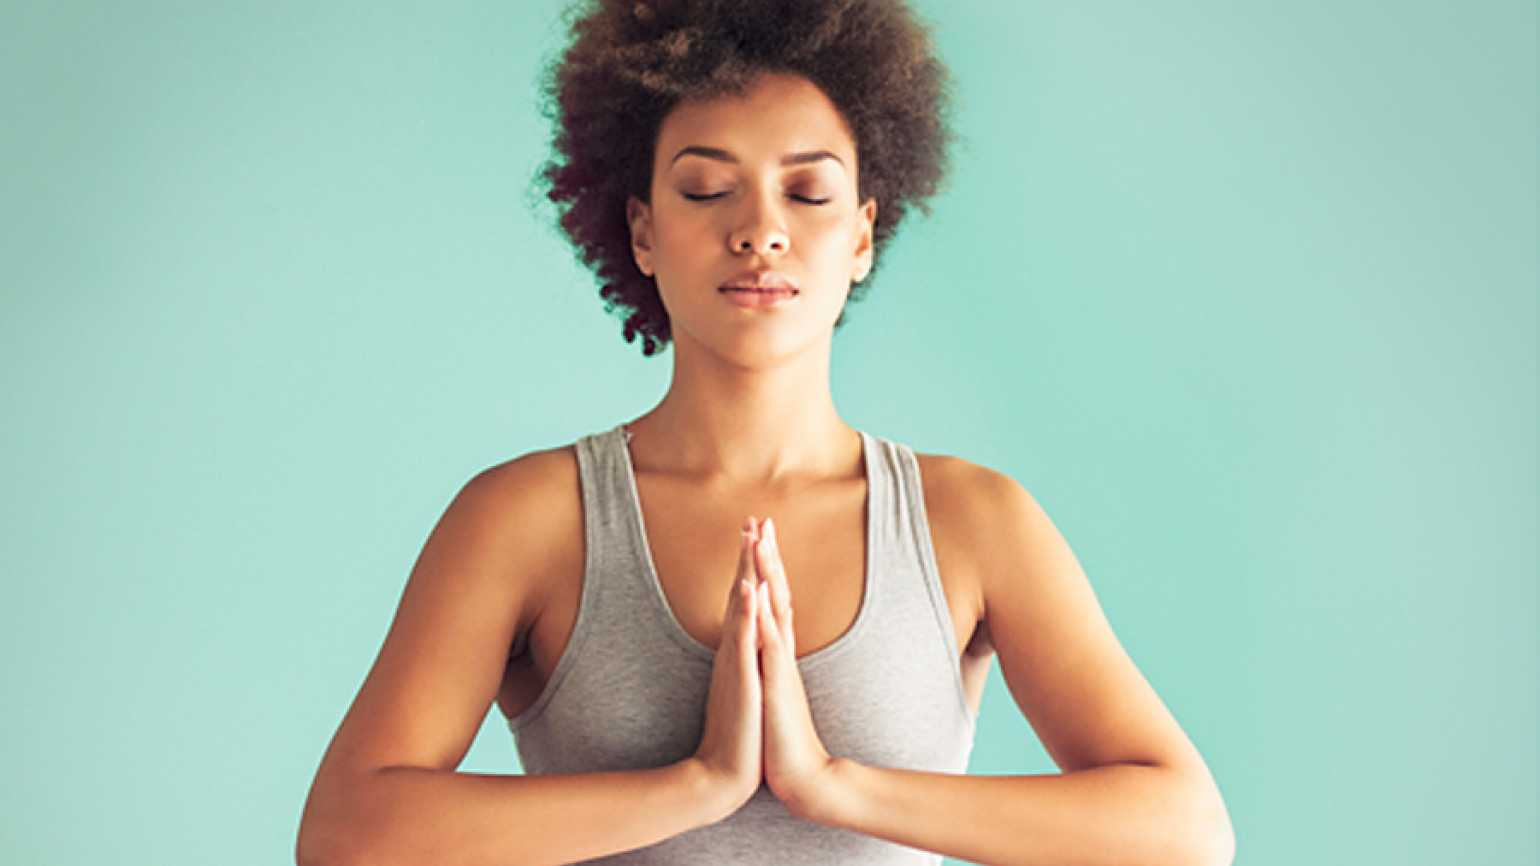 young woman sitting in a yoga pose praying hands